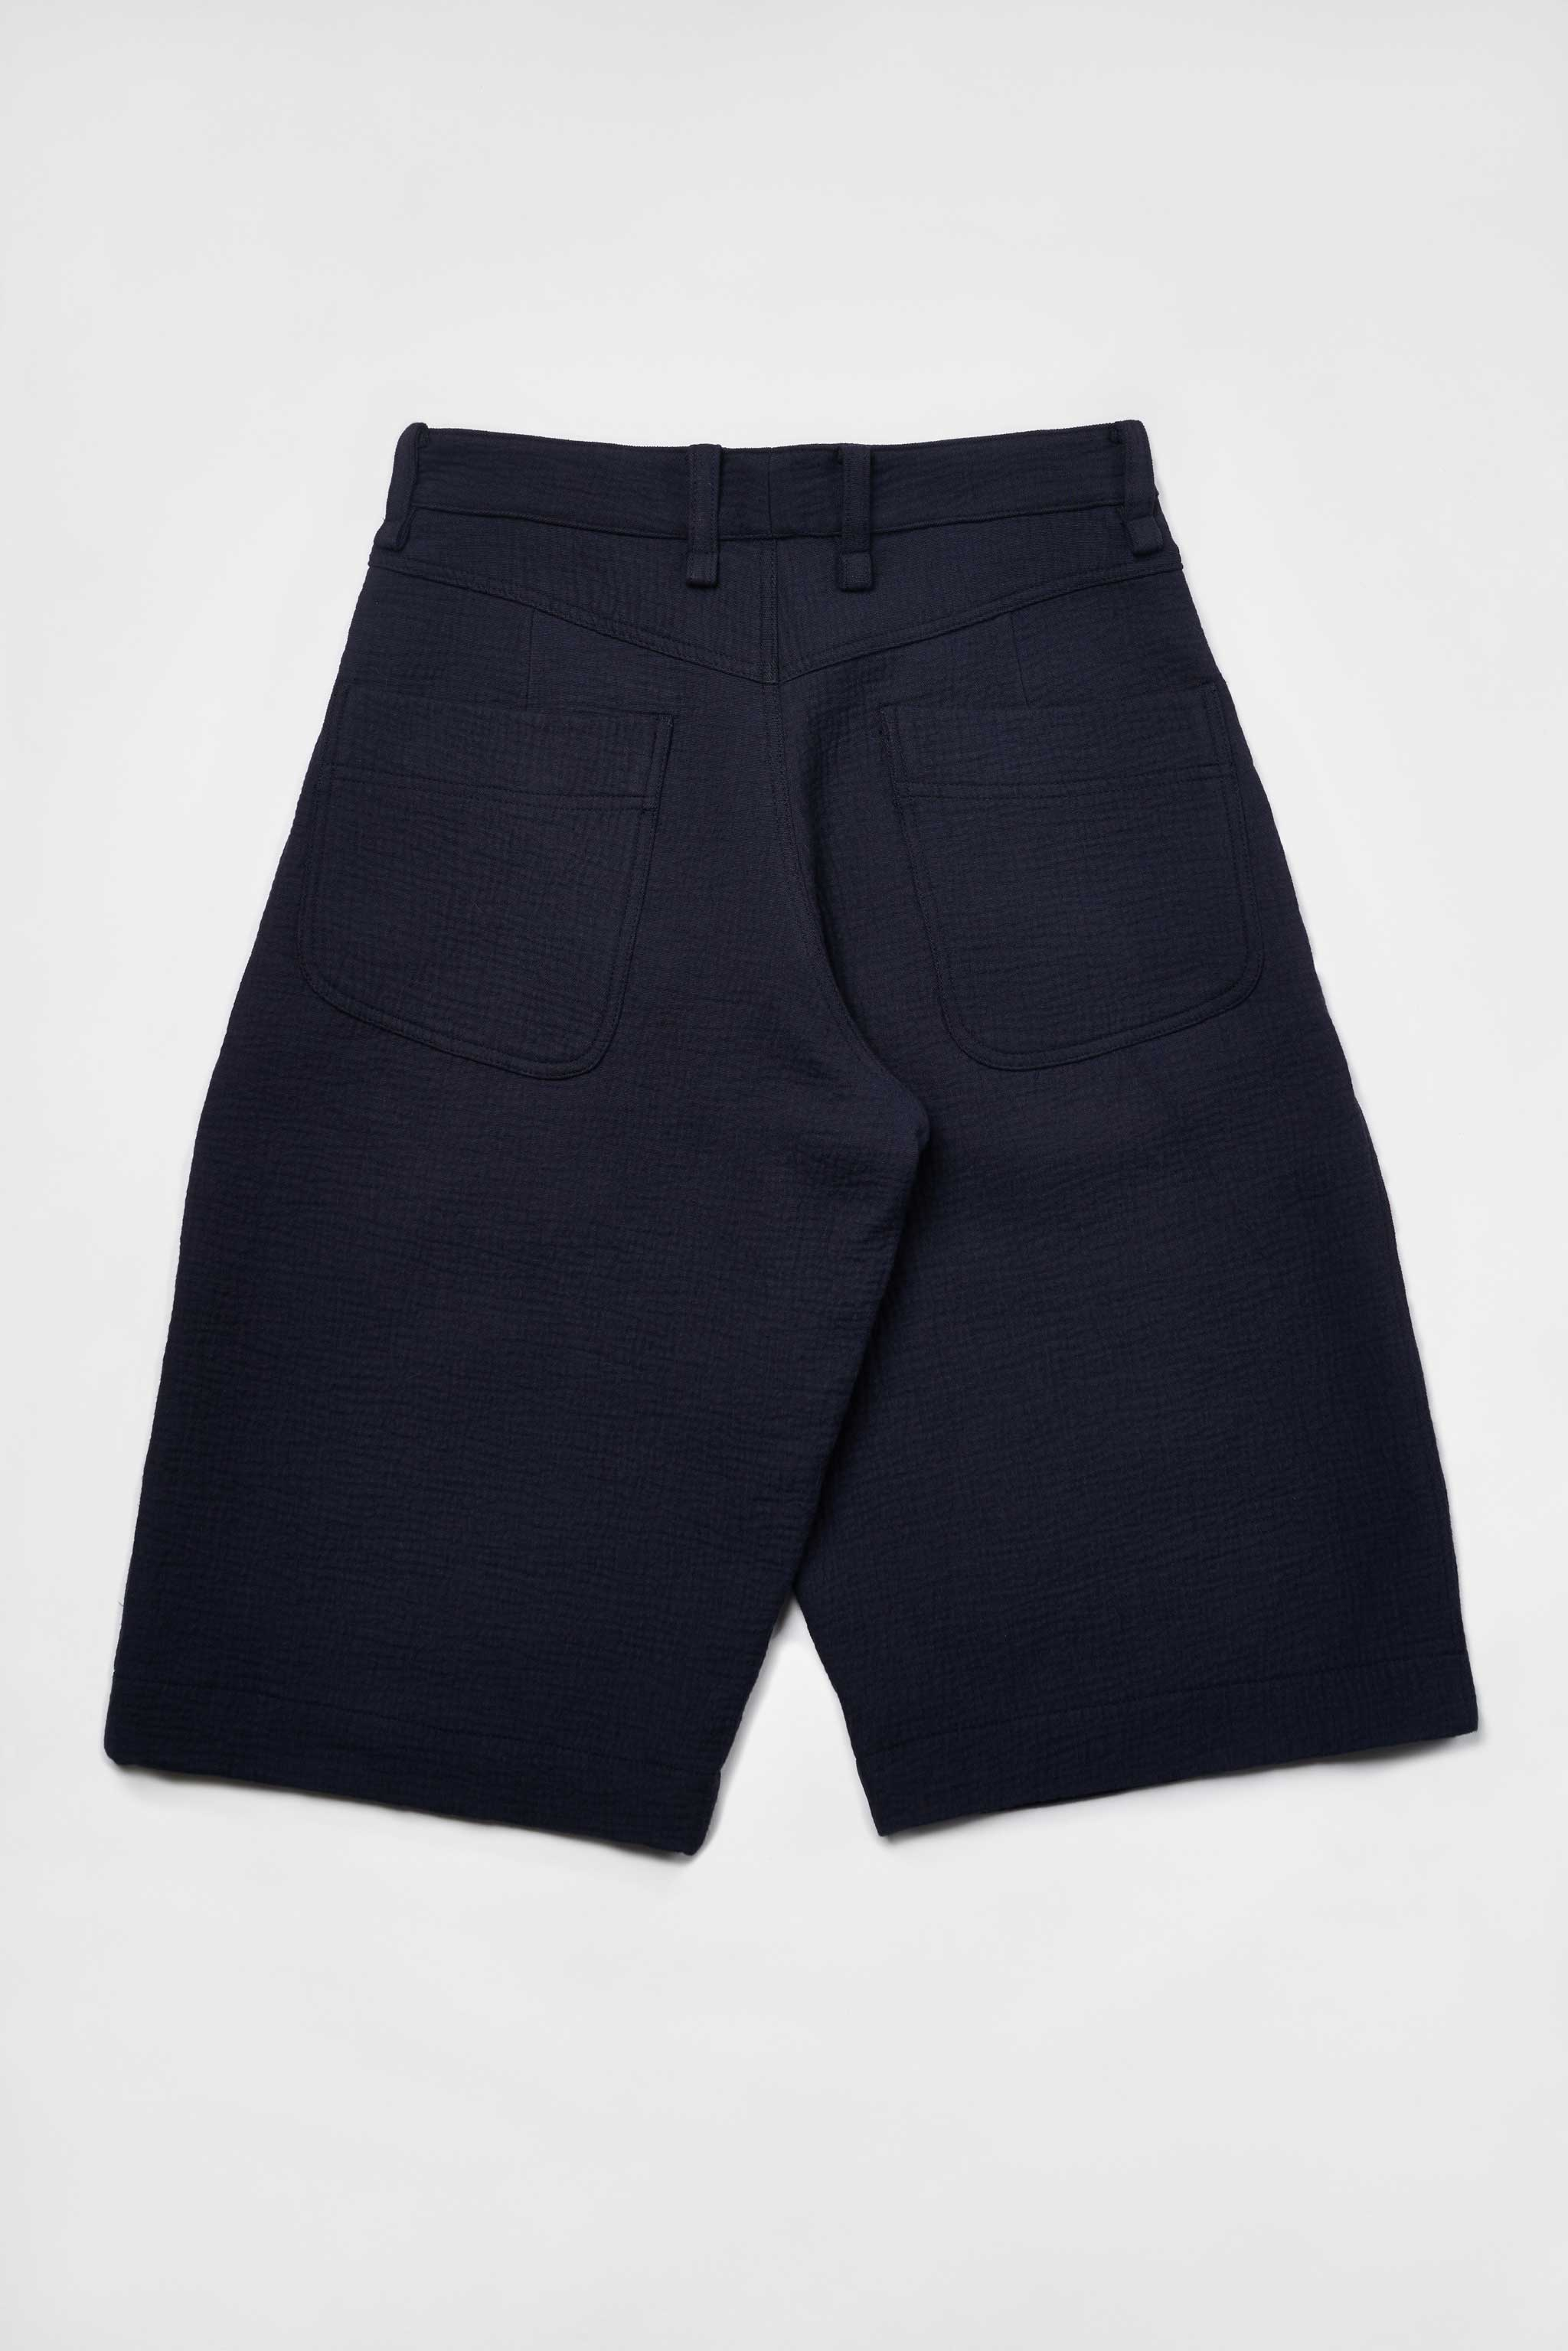 Goodfight All Access Shorts Navy